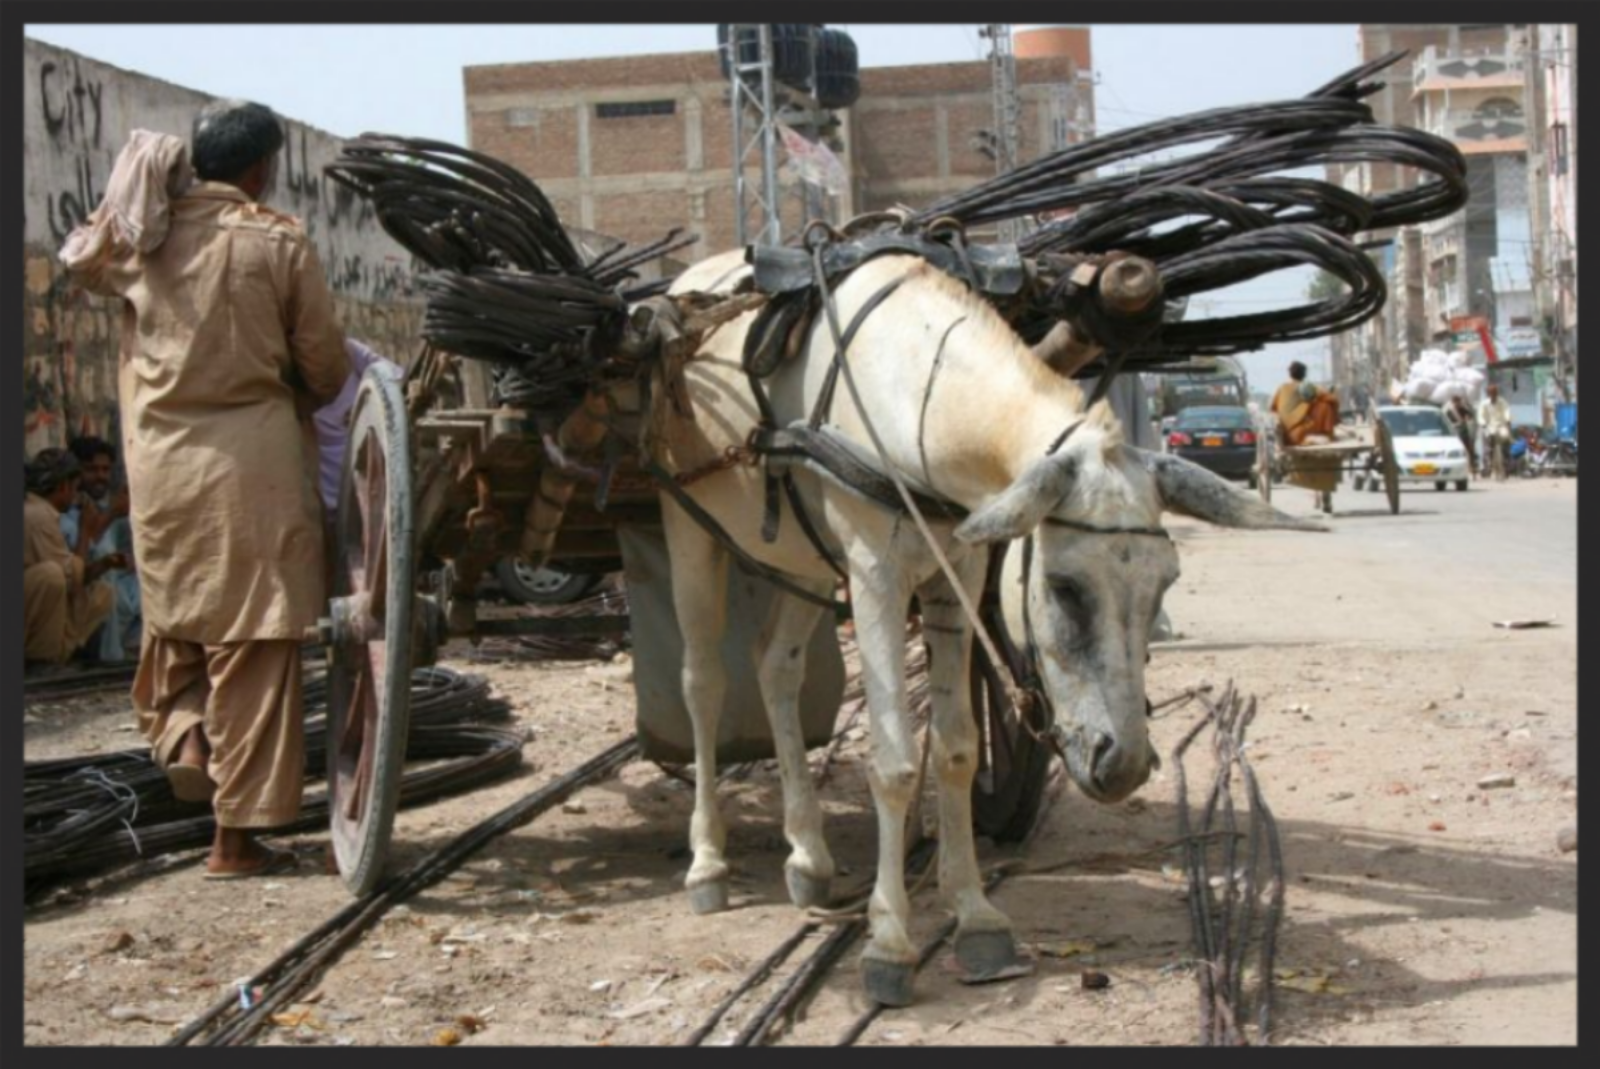 Without intervention from the Brooke,this overloaded, exhausted andhopelessanimal will get no relief as he labors in Pakistan's construction industry. Like most working equines, he willwork until he dies in harness.